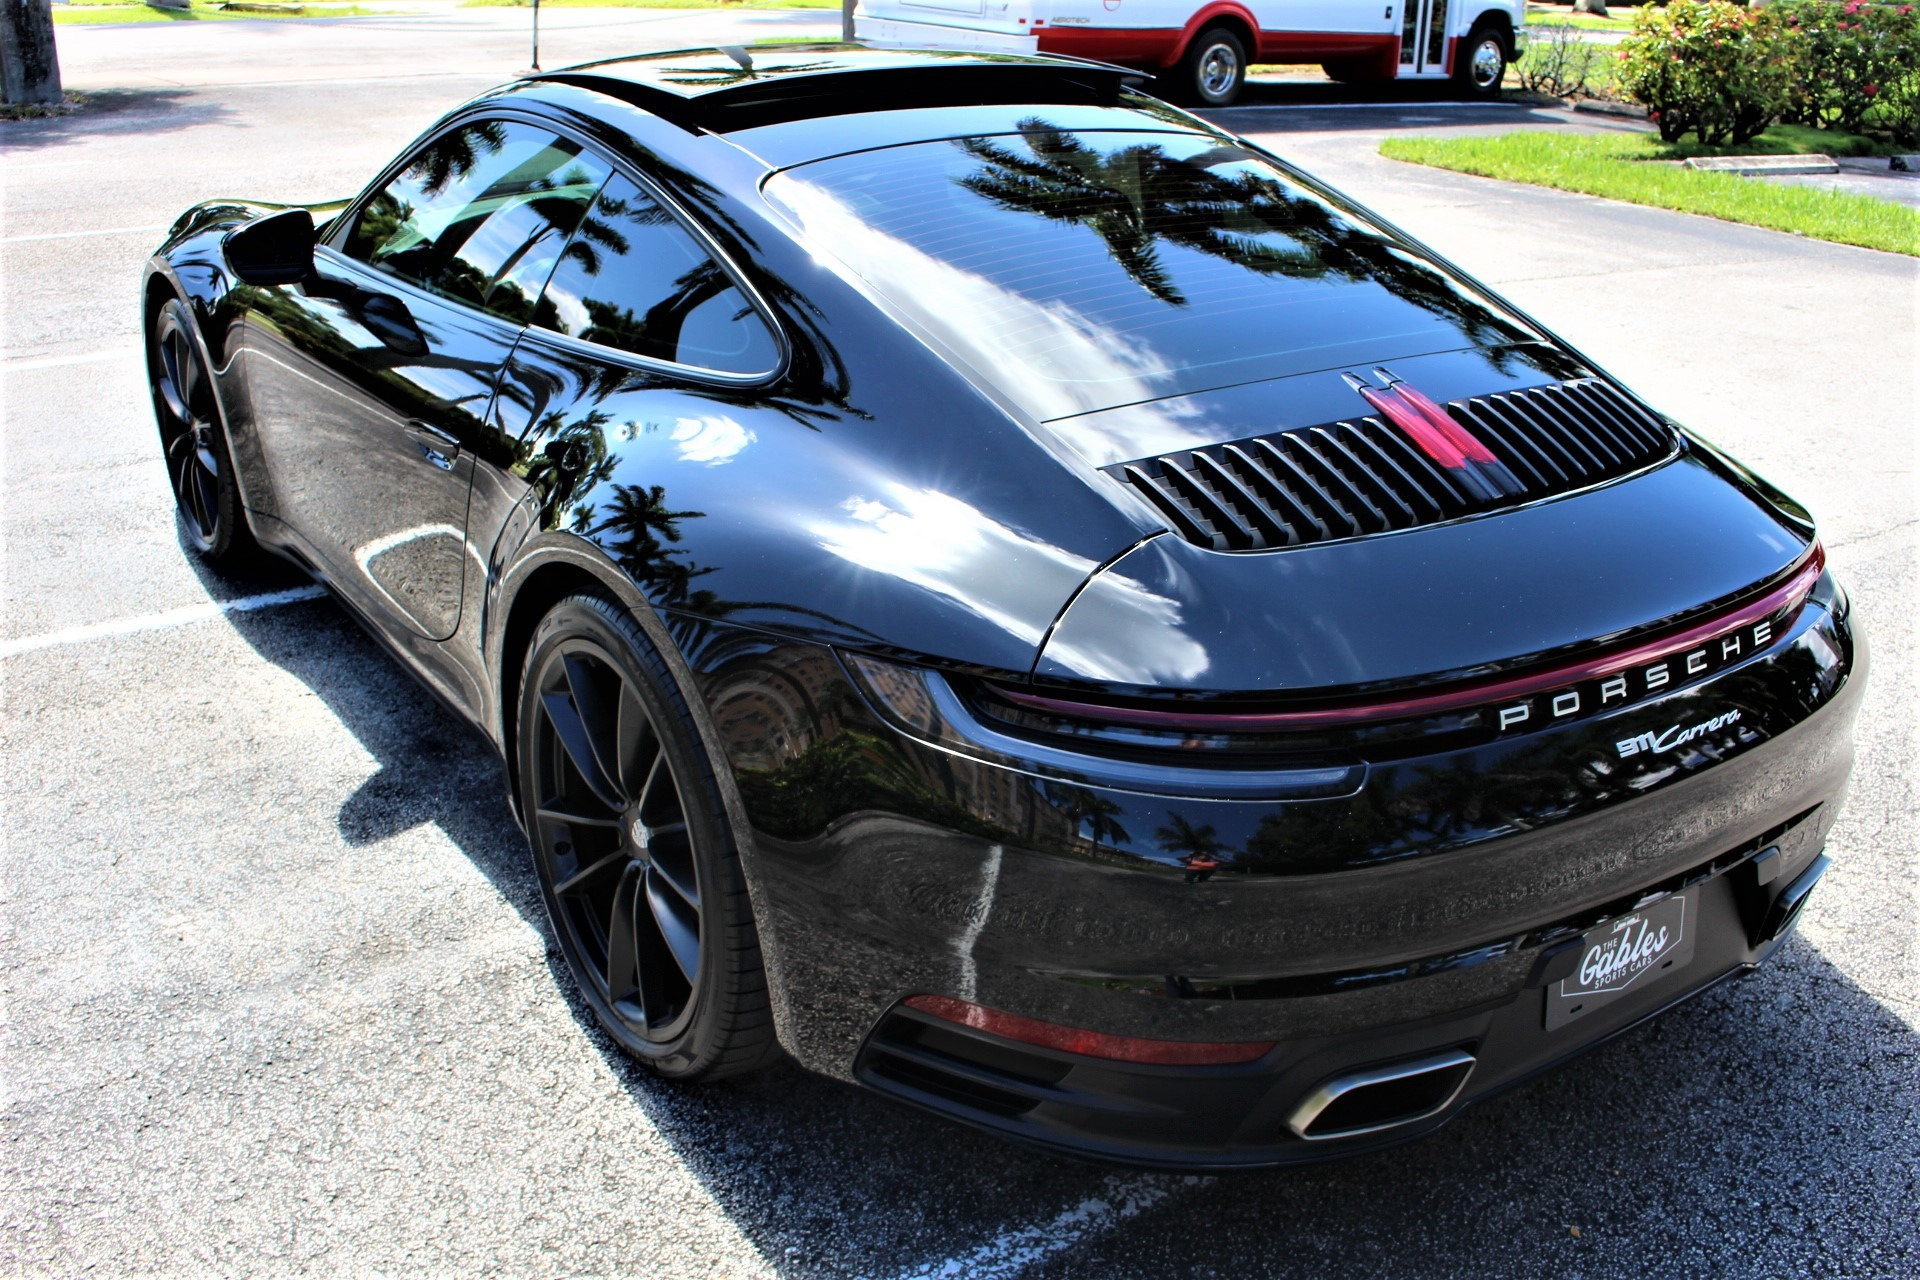 Used 2020 Porsche 911 Carrera for sale Sold at The Gables Sports Cars in Miami FL 33146 2